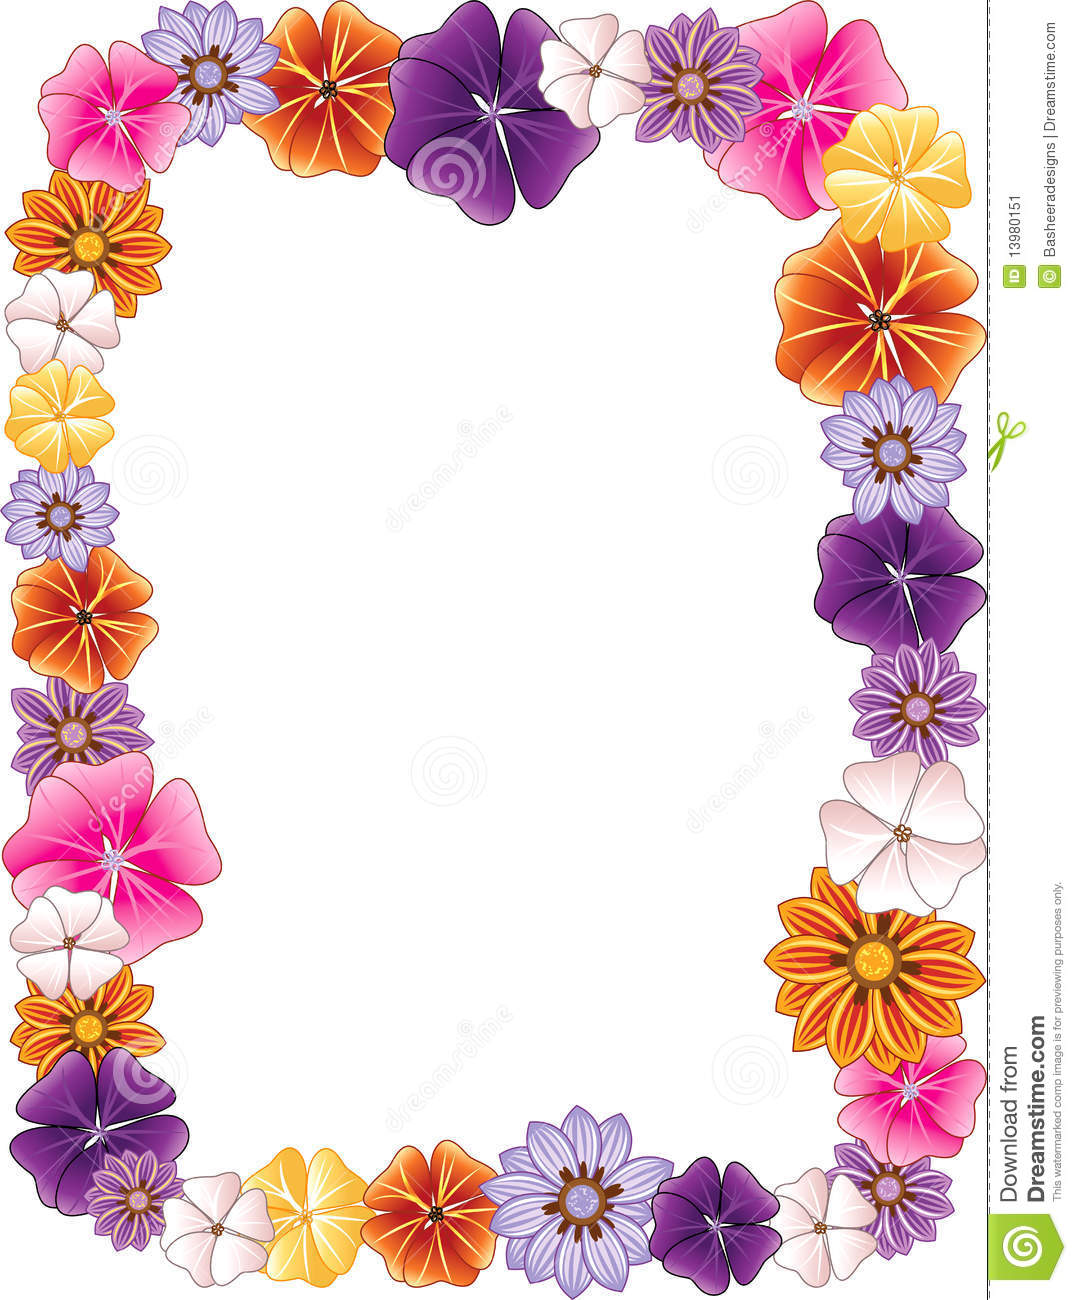 1077x1300 Flowers Border Clipart